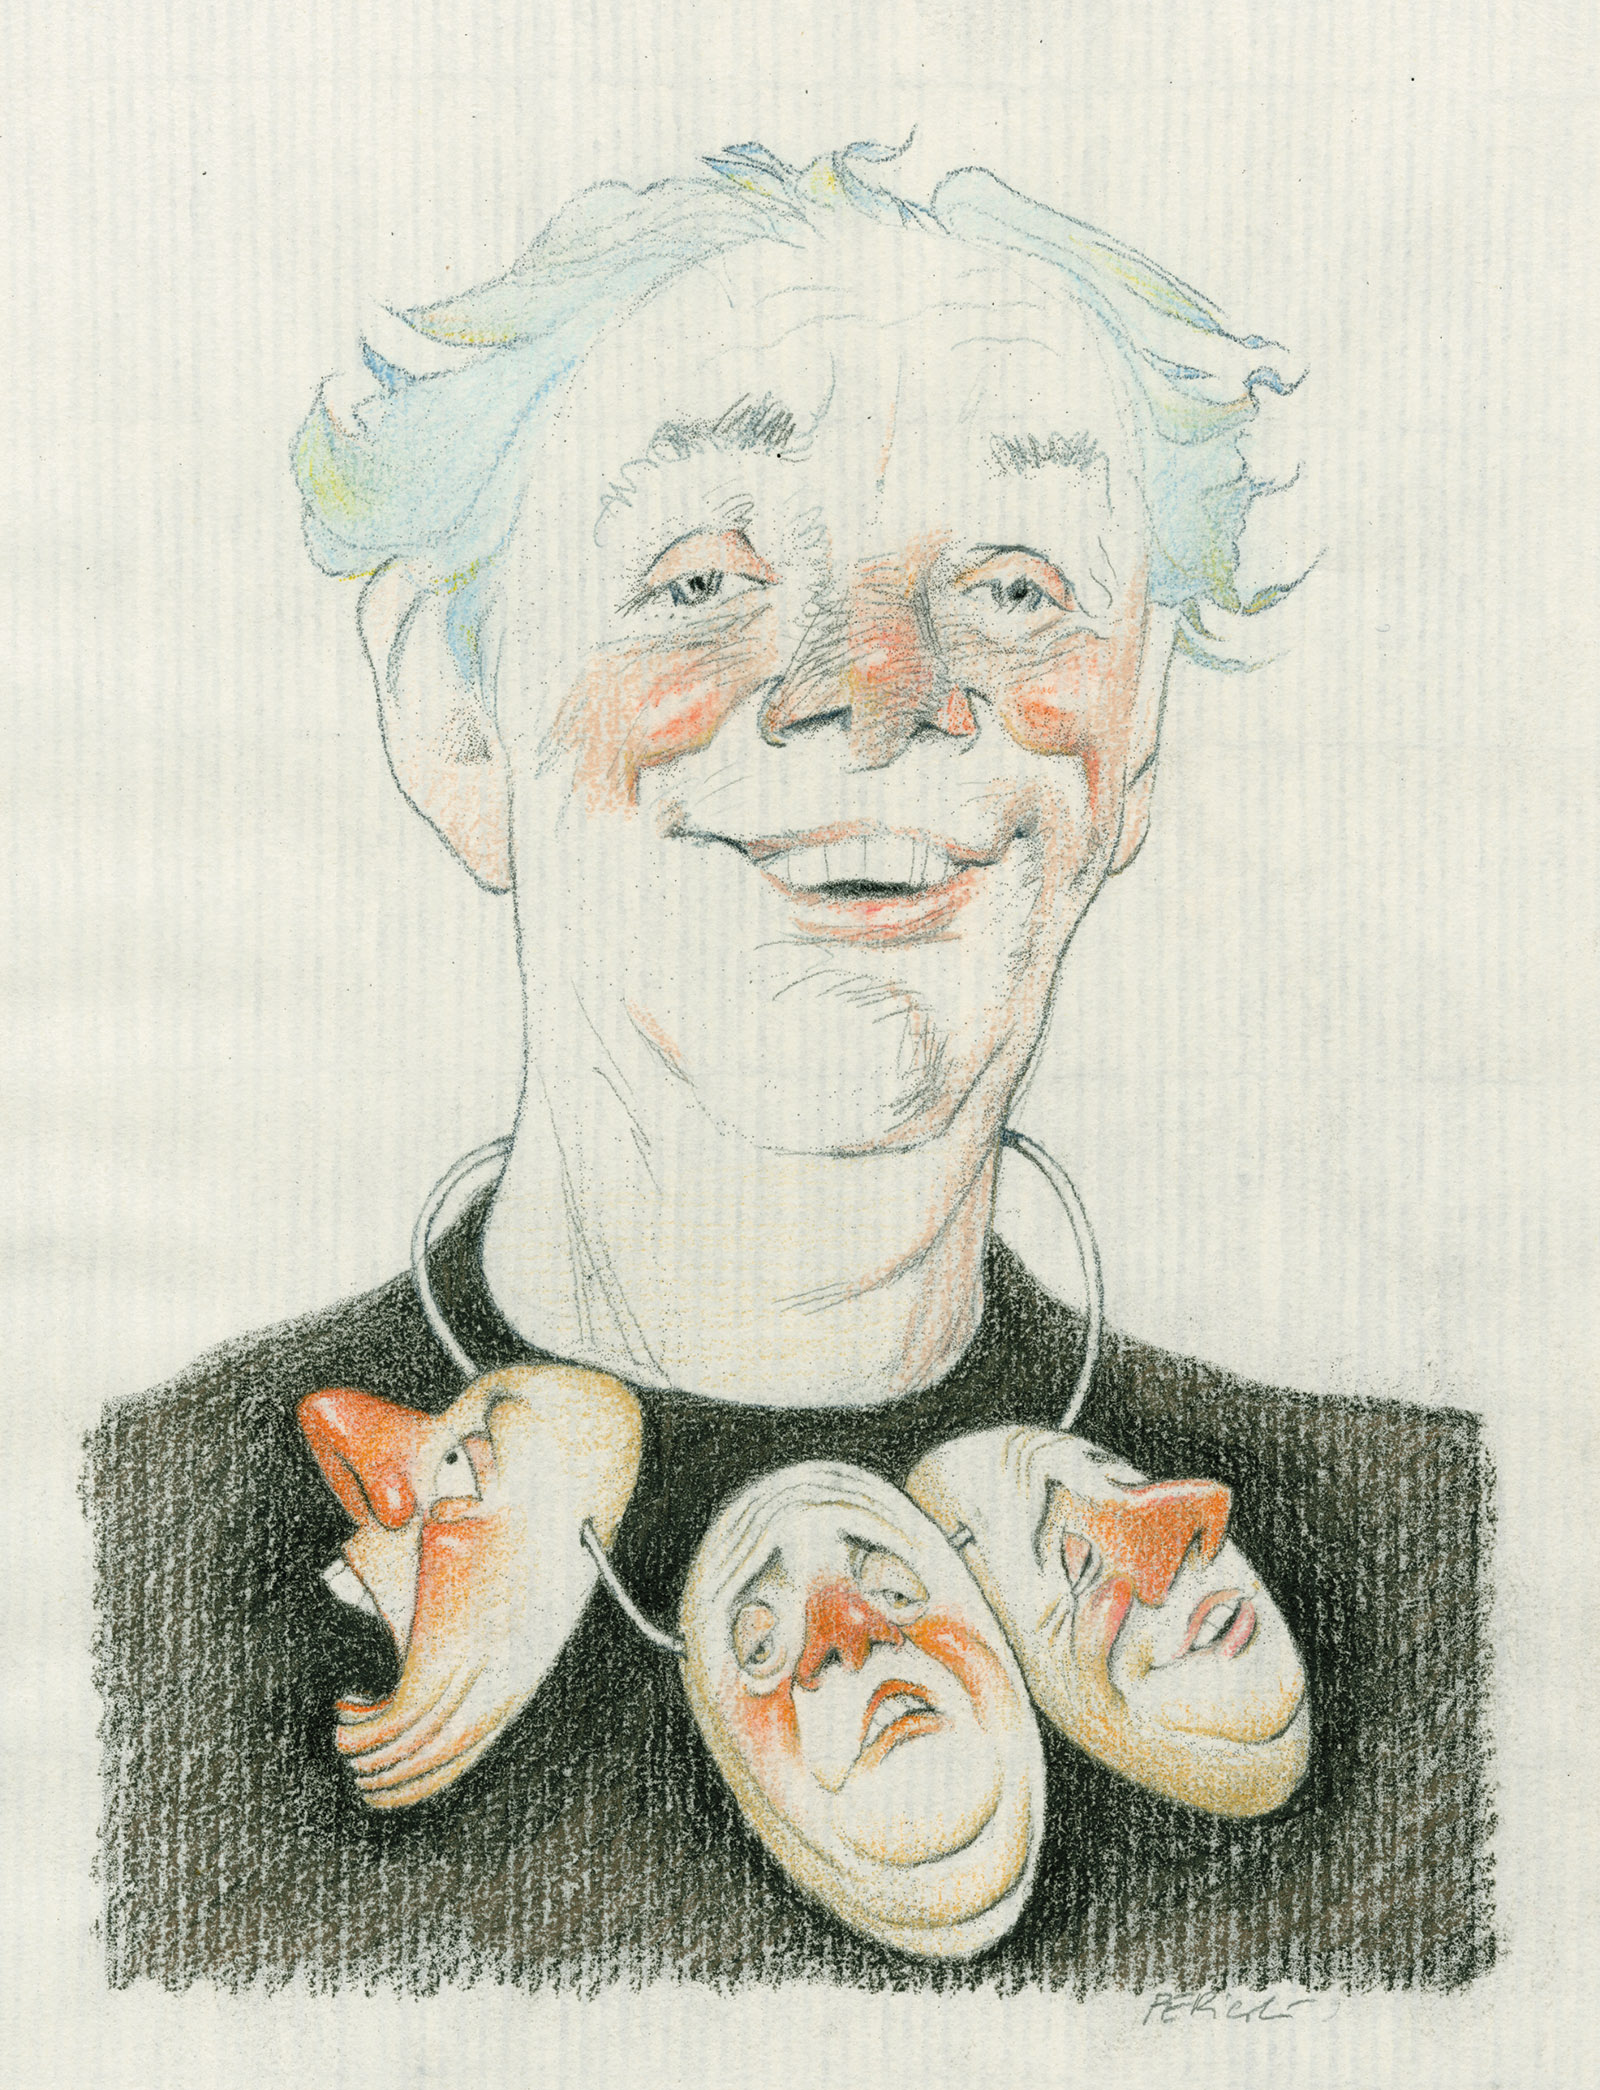 Drawing of Dario Fo by Tullio Pericoli